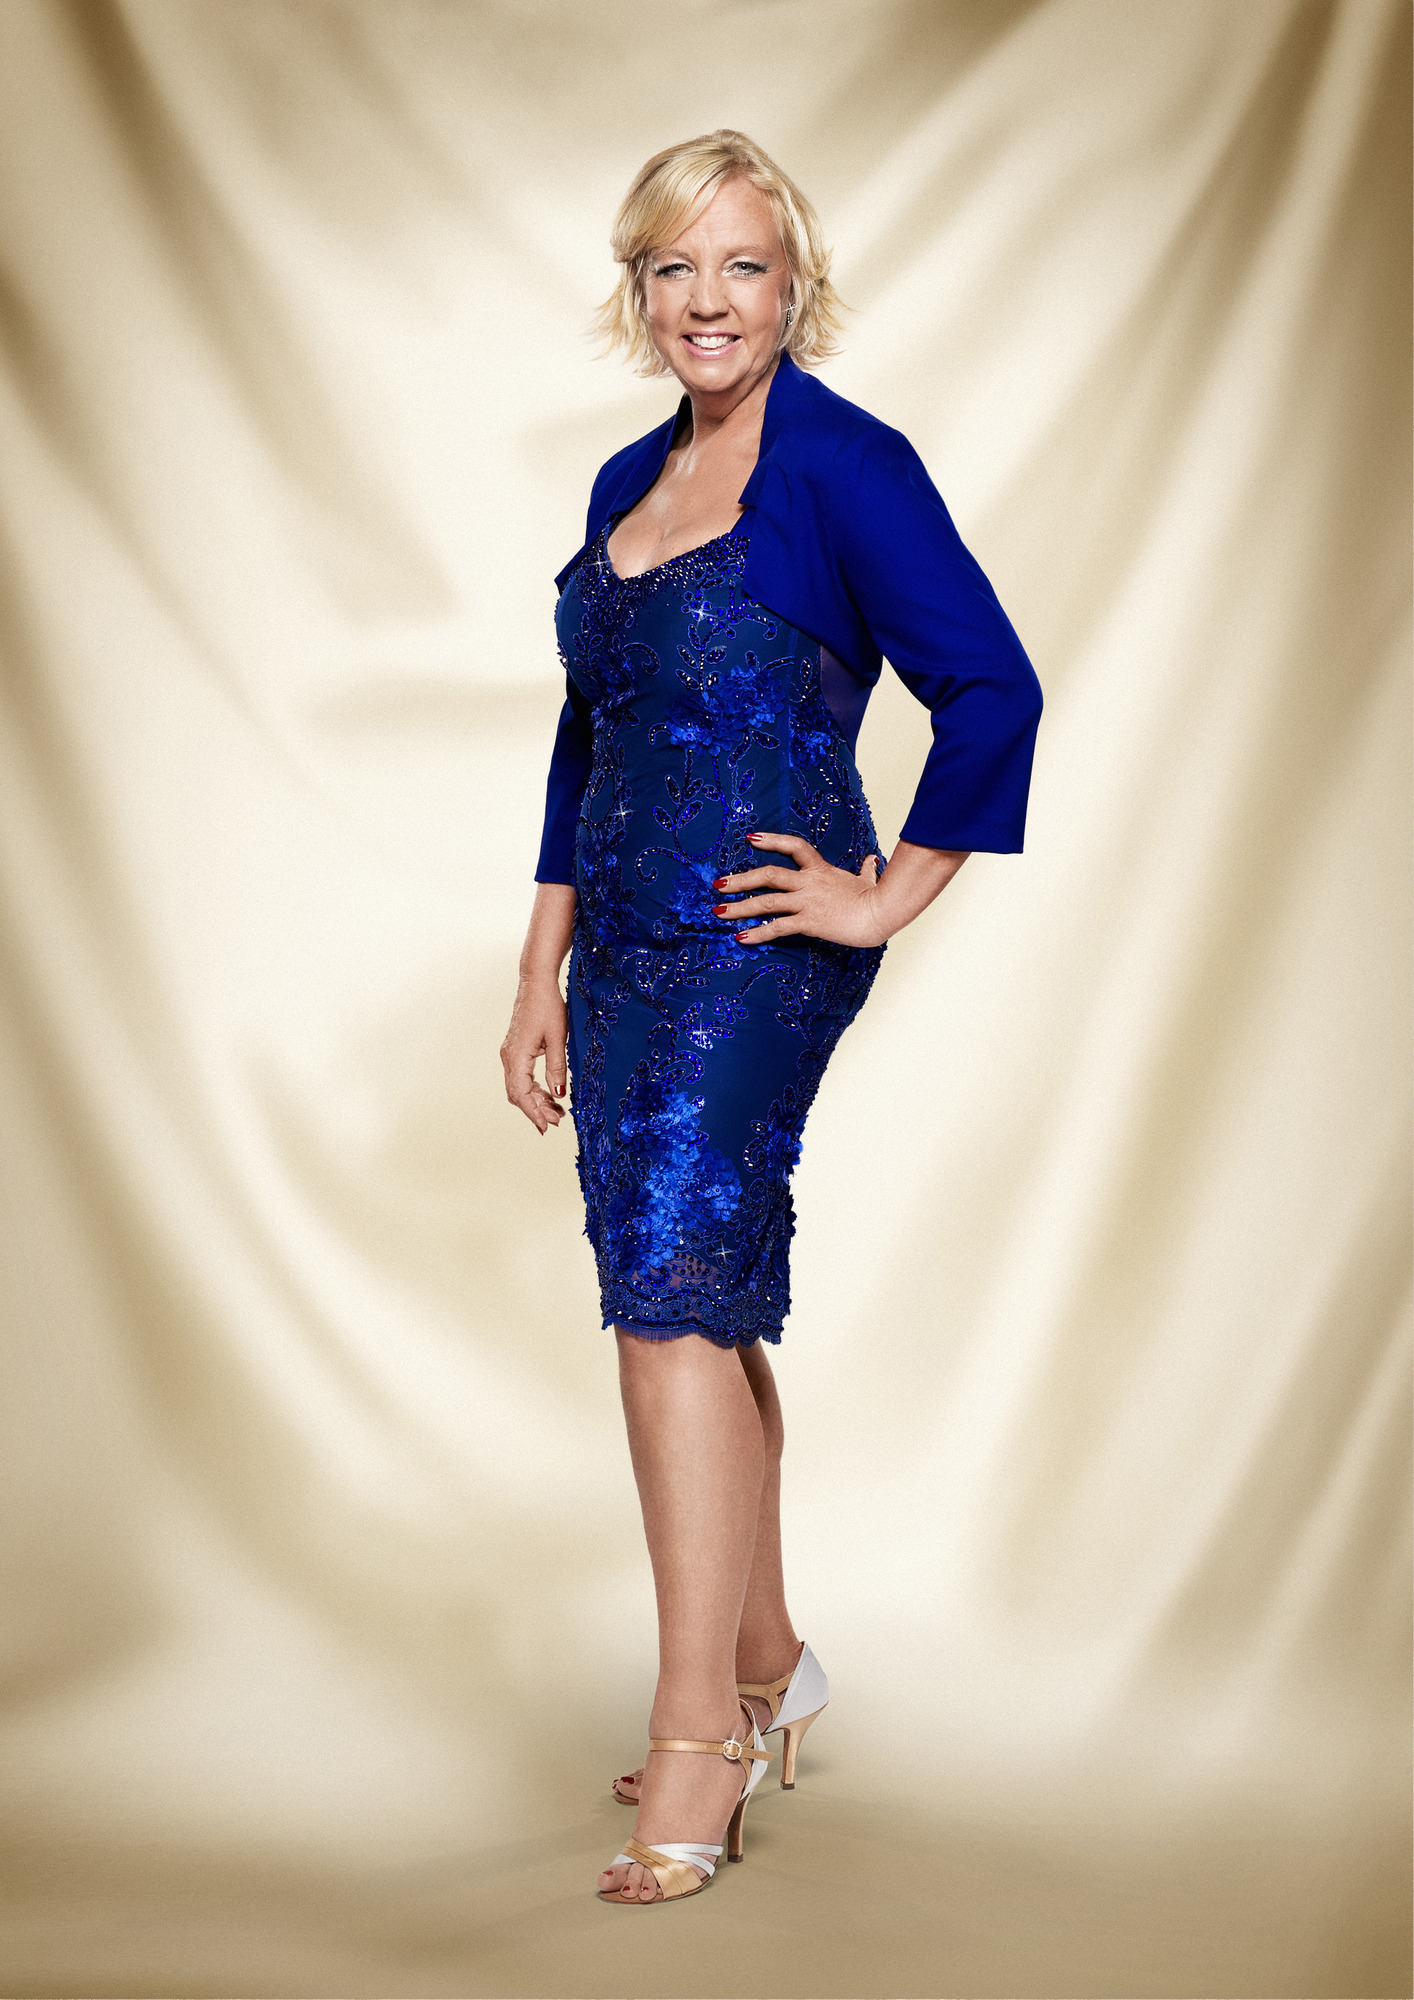 Deborah_Meaden on Deborah Meaden